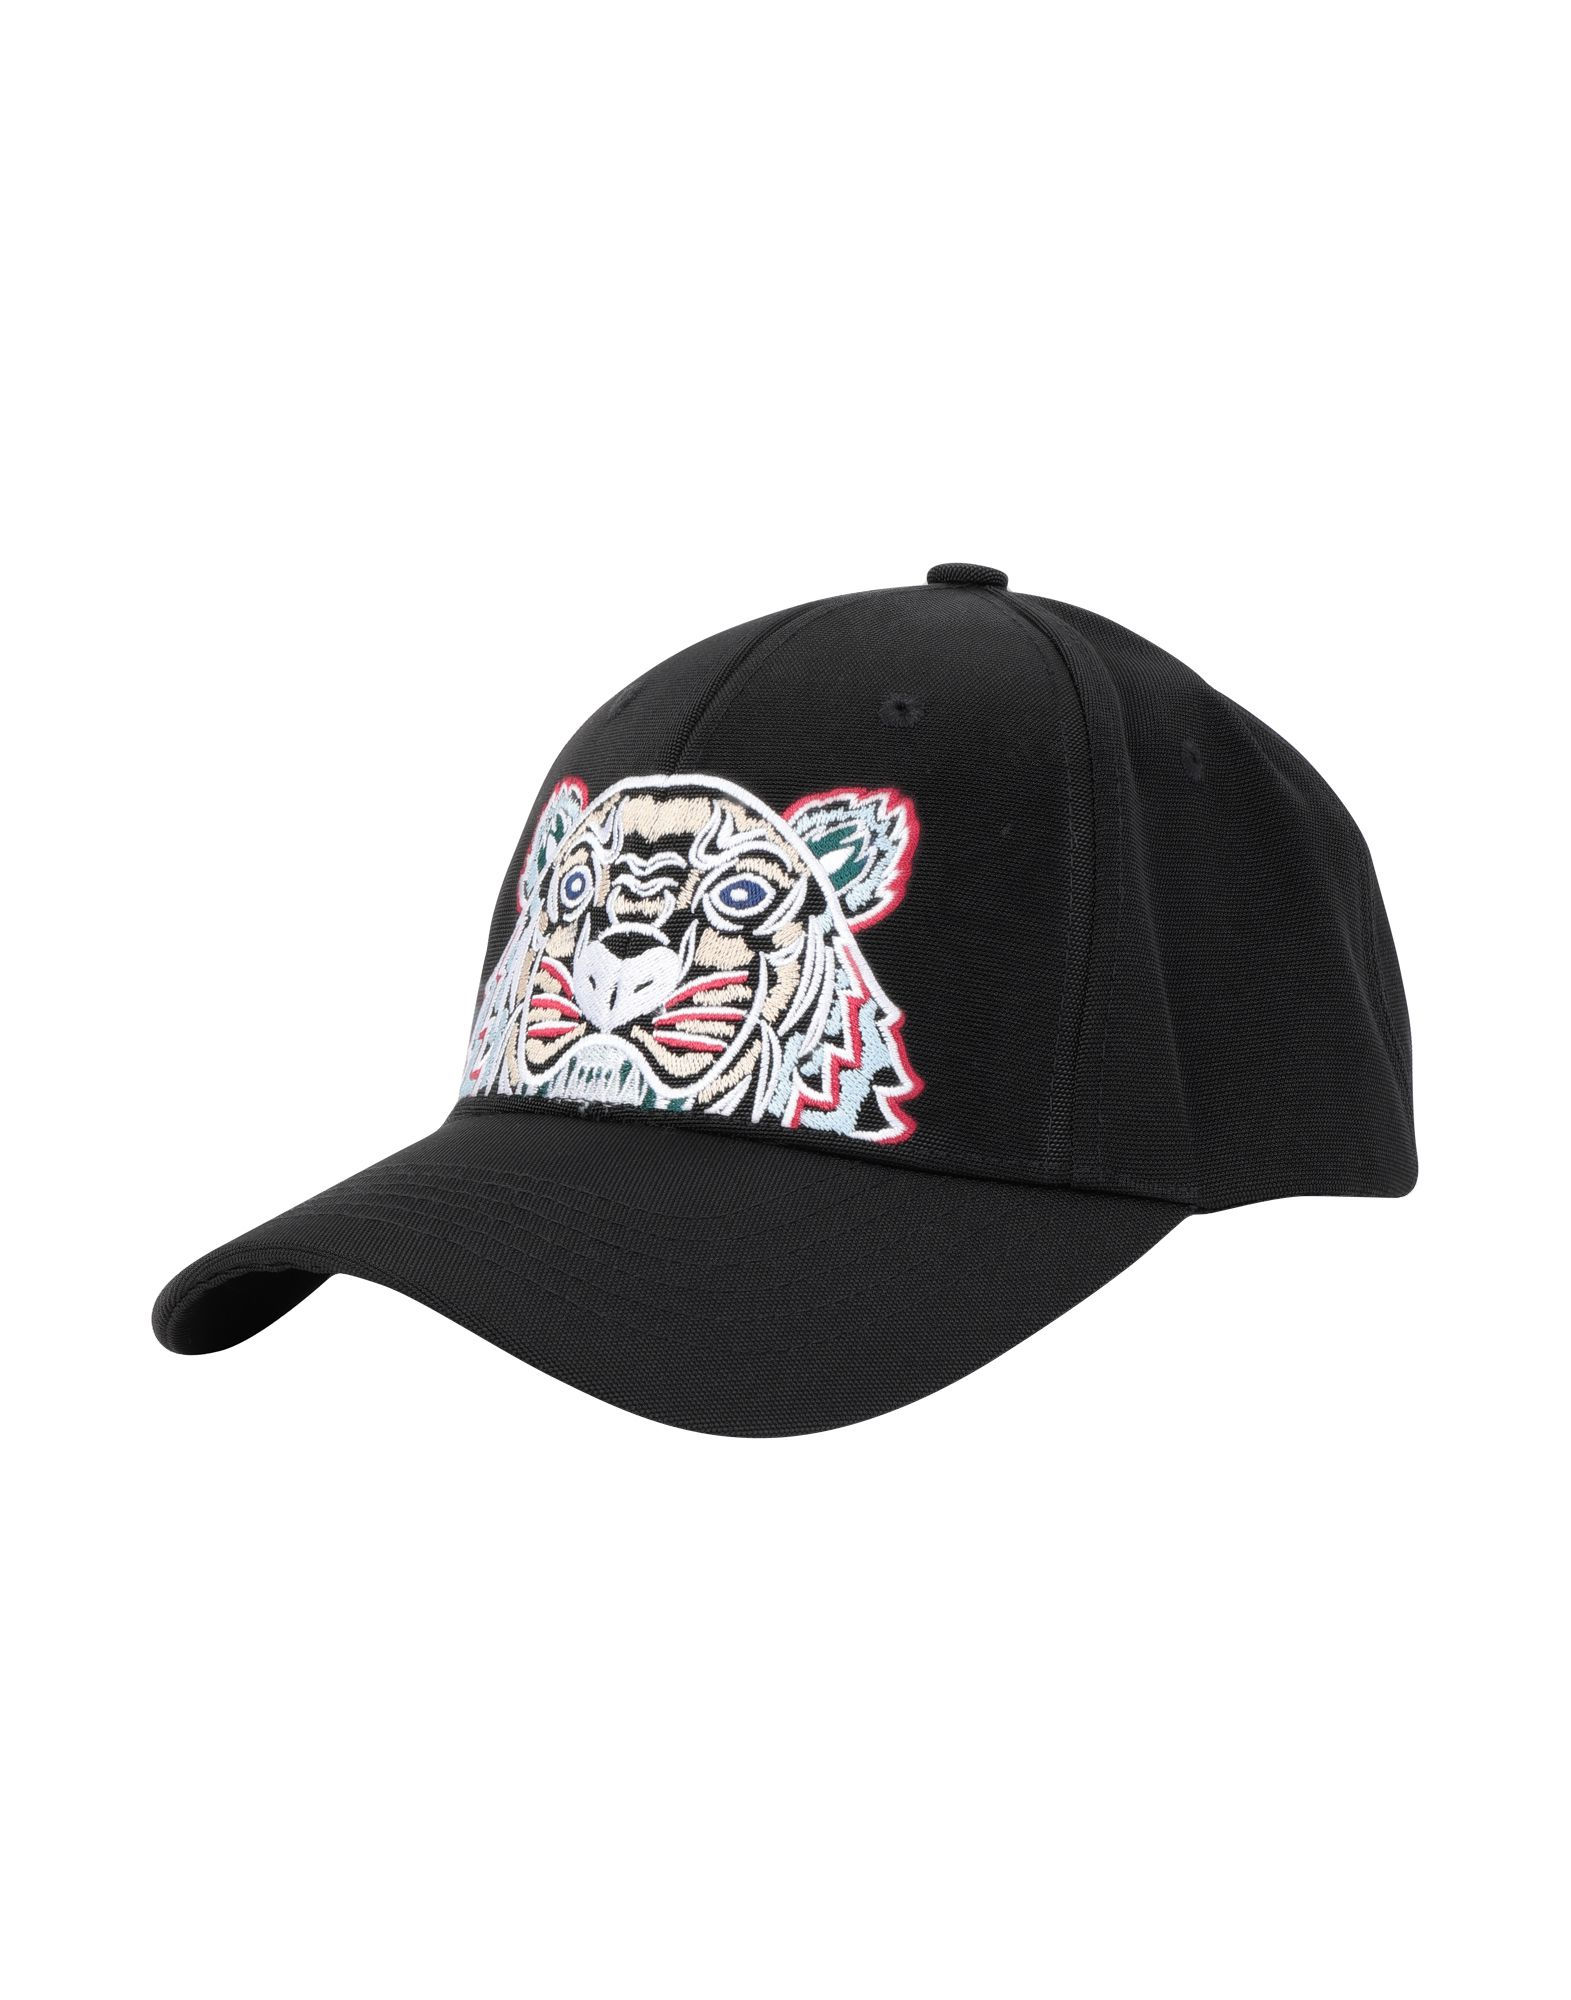 KENZO Головной убор головной убор new exo baseball hat hater 40oz korean version of kenzo eyes men and women spring summer hip hop hats exo kenzo hater 40oz